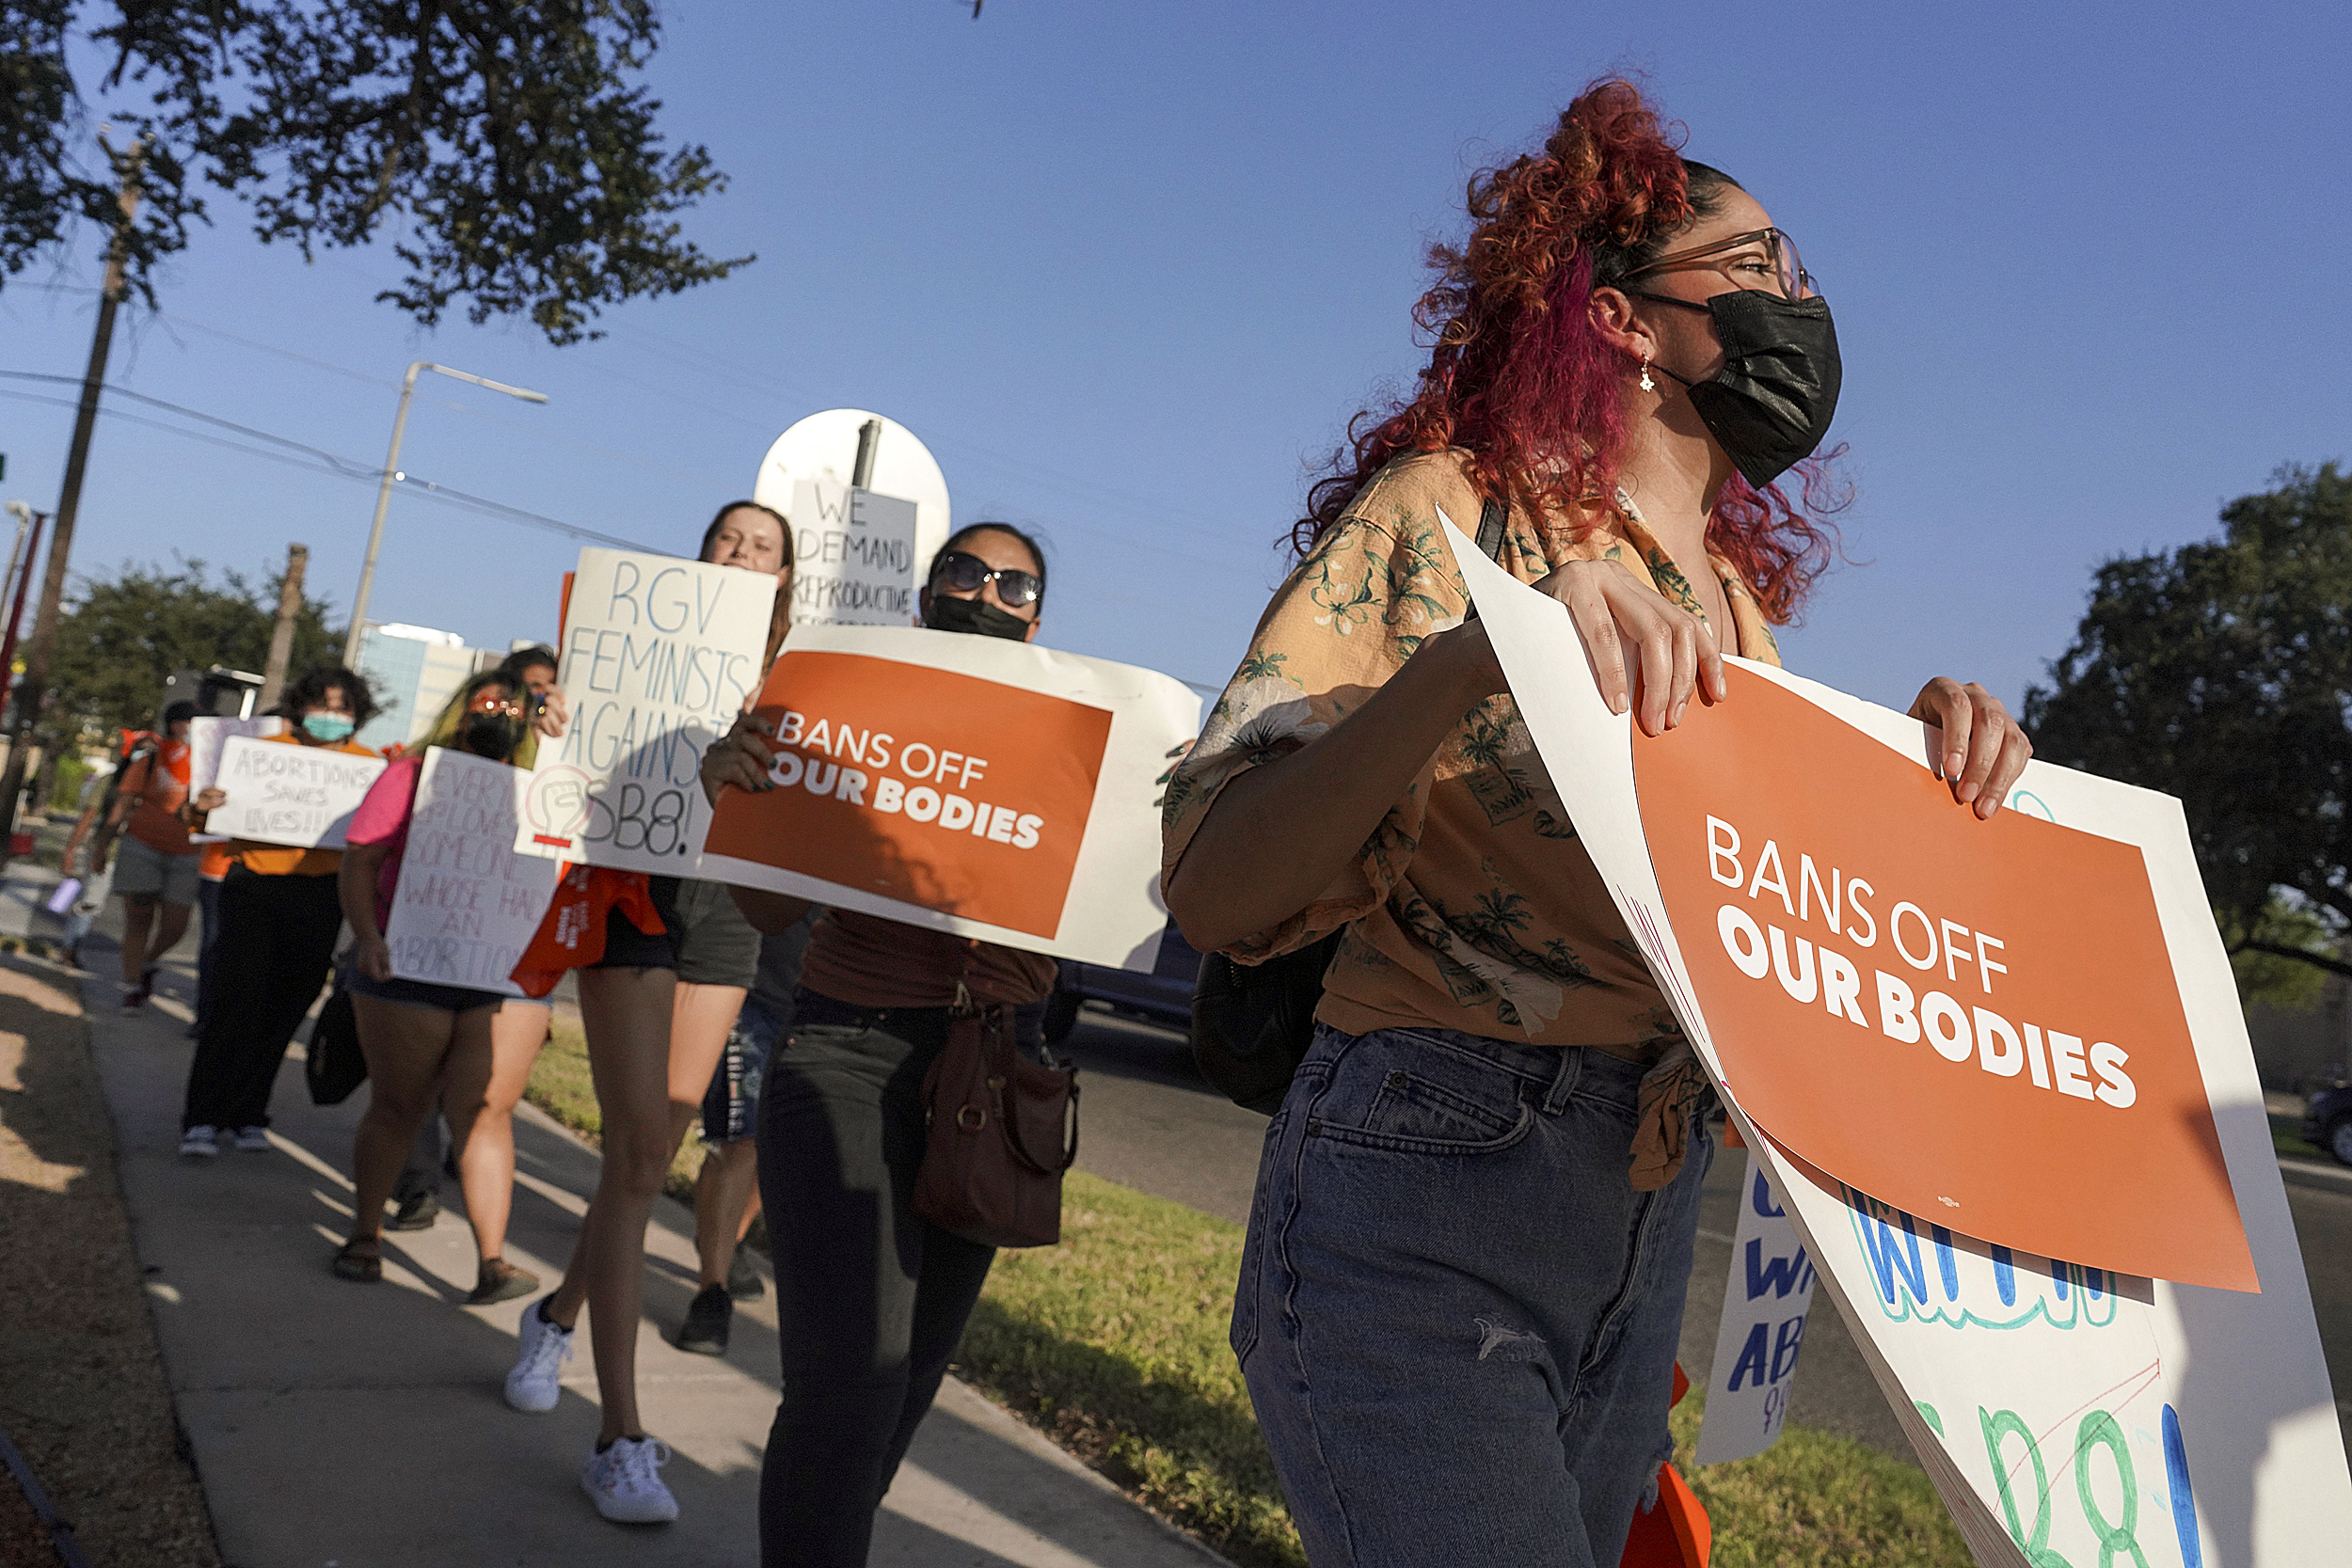 Amid Texas abortion bill outrage, CEOs are mostly silent — for now